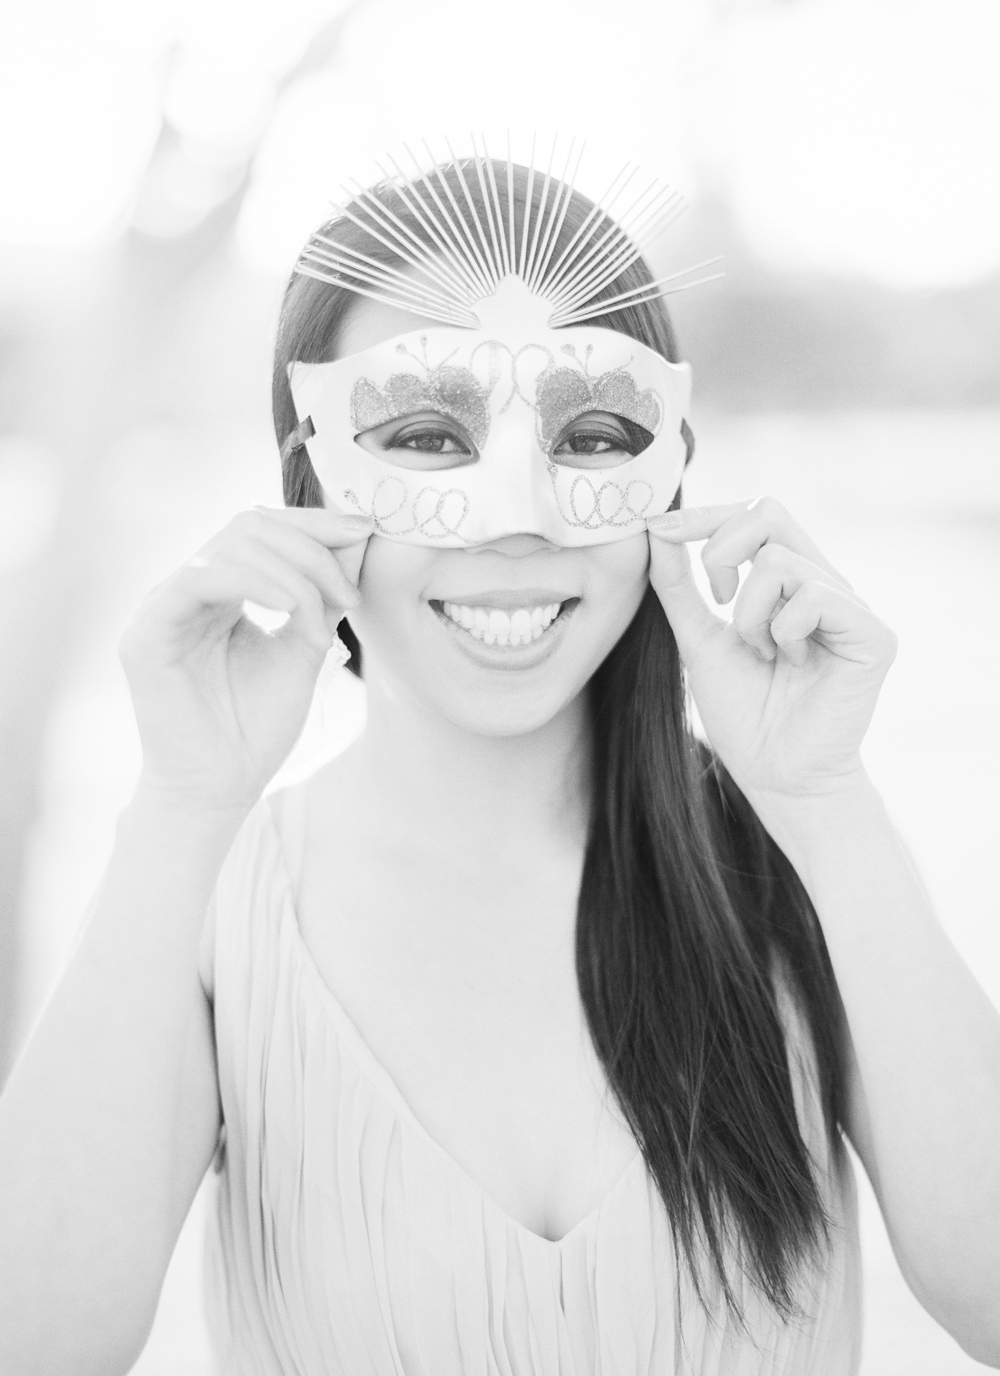 Event Guests Accessorizes with Mask